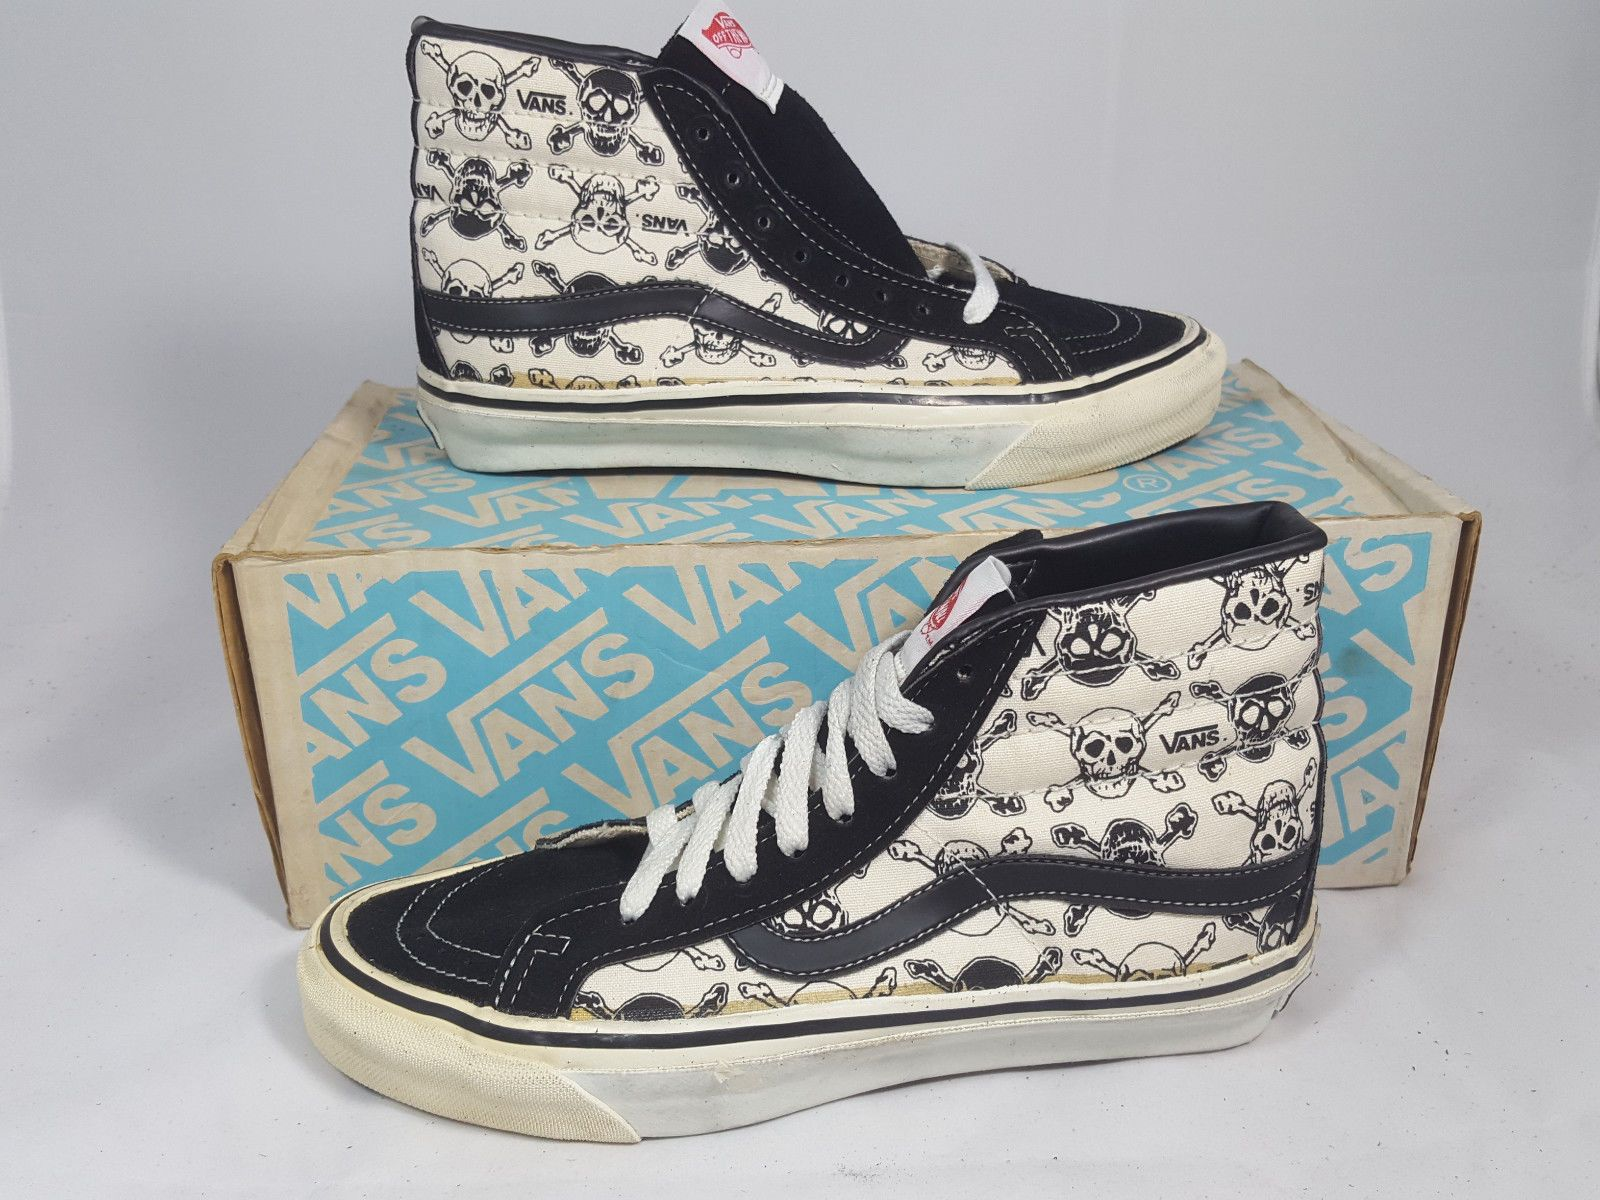 Vintage Vans shoes SK8 HI WHITE PIRATE SKULL made USA Men's